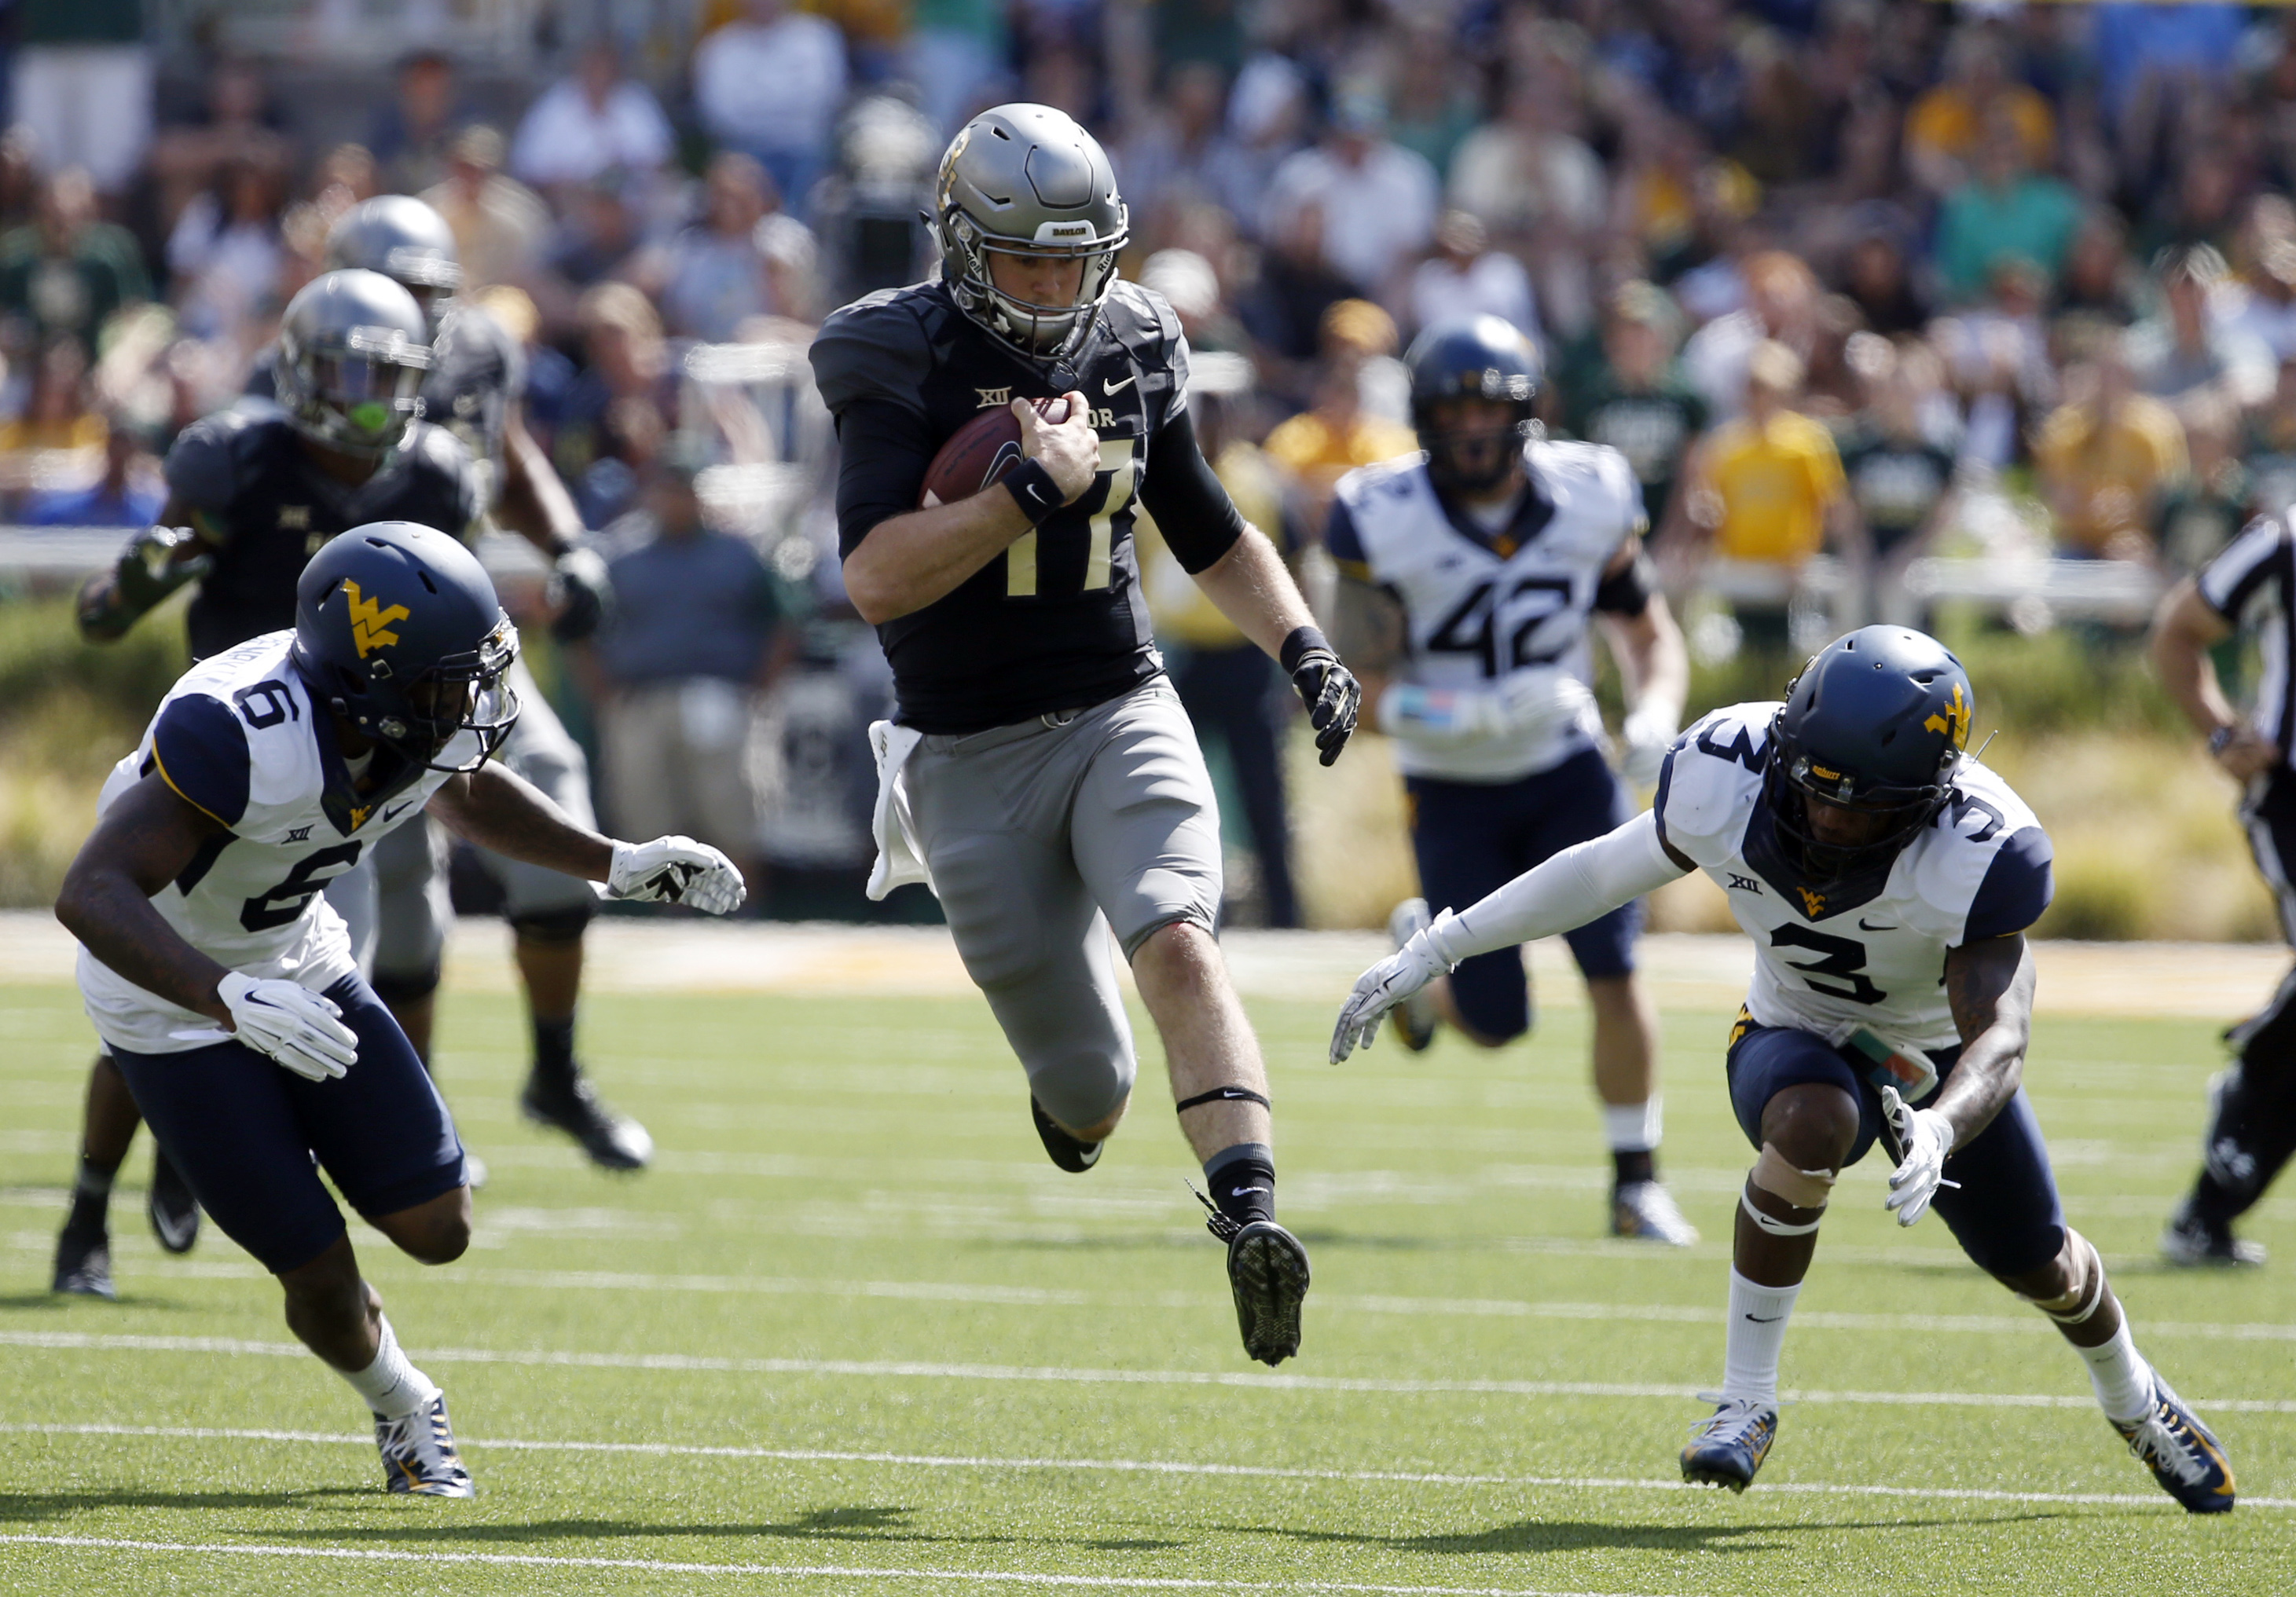 Baylor quarterback Seth Russell, center, runs between West Virginia safety Dravon Askew-Henry, left and Rick Rumph III, right, in the second half of an NCAA college football game, Saturday, Oct 17, 2015, in Waco, Texas. (AP Photo/Rod Aydelotte)